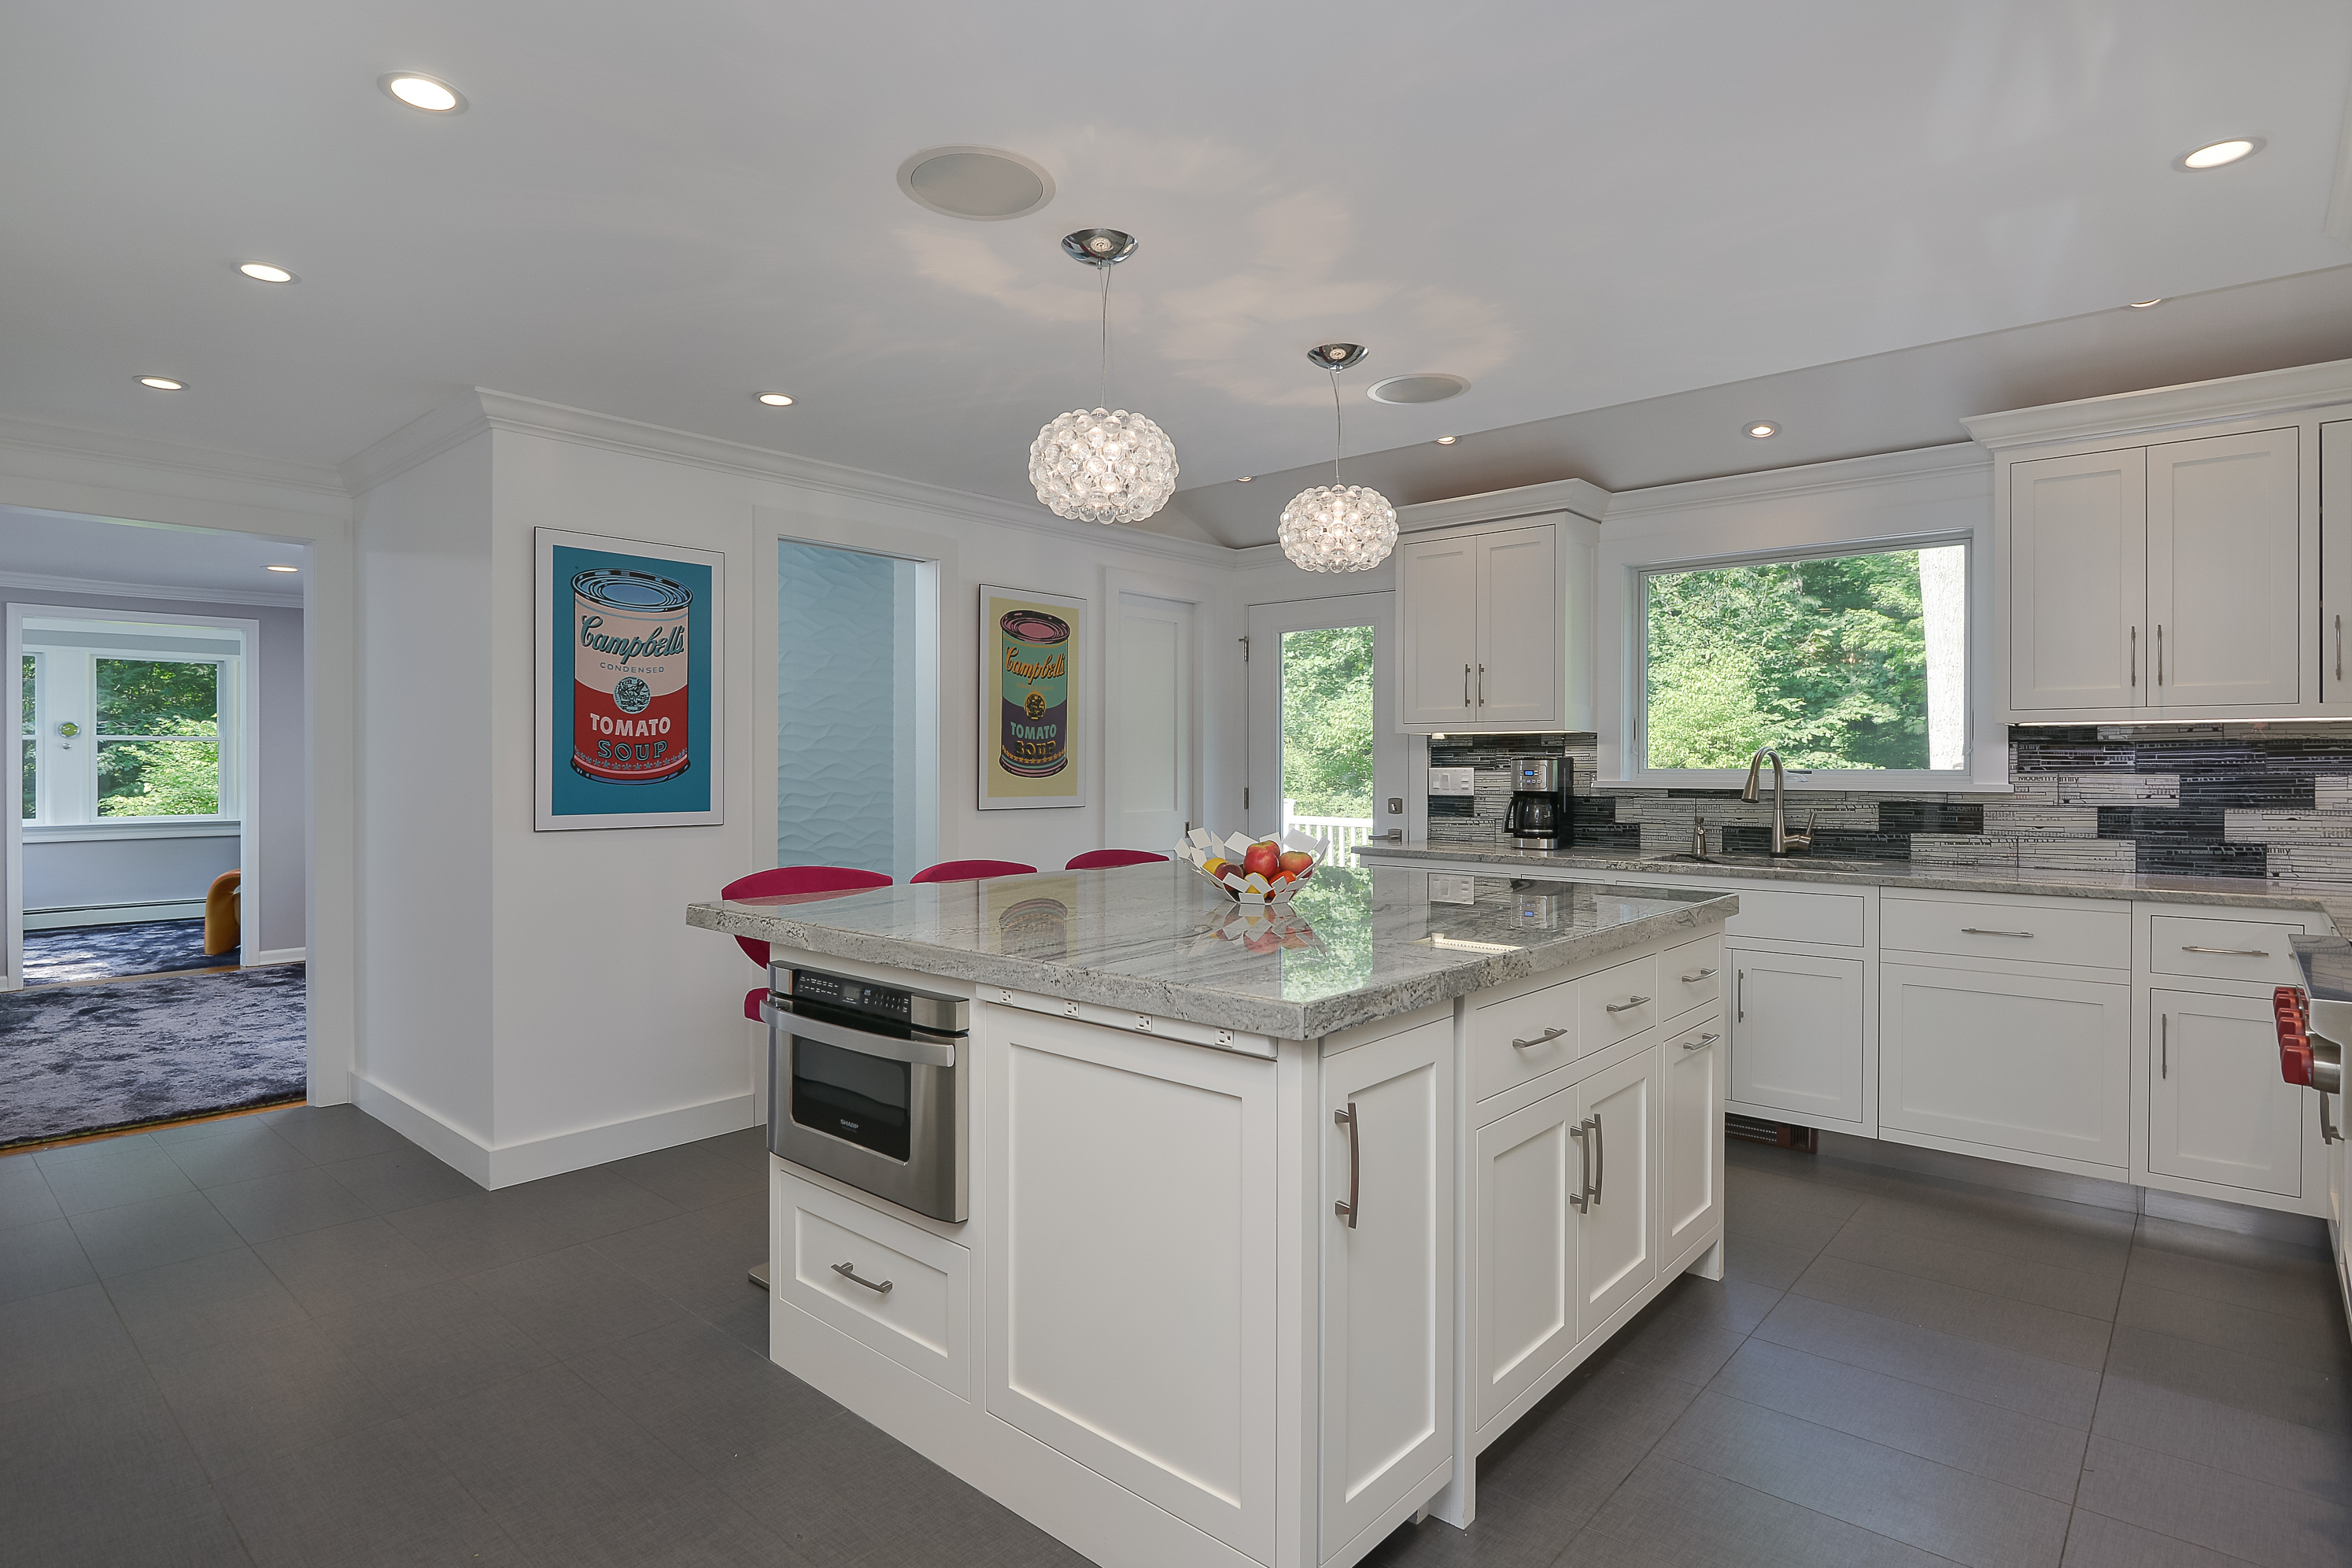 Single Family Home for Sale at The Art of Being Unique 1418 Riverbank Road Stamford, Connecticut, 06903 United States